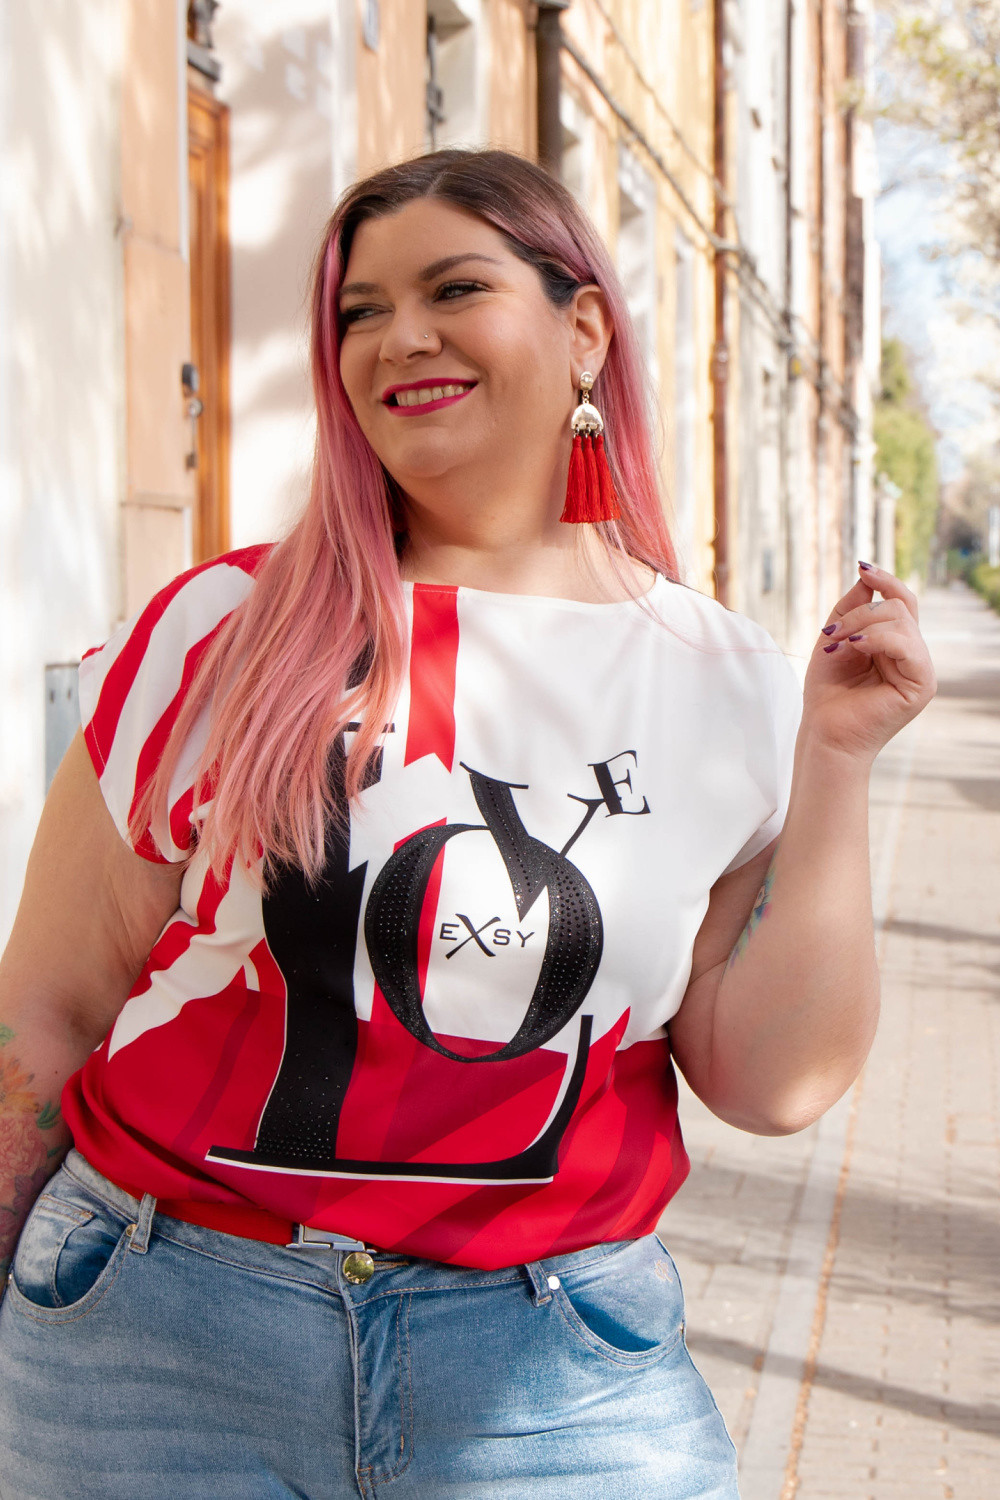 outfit casual sportivo Exsy curvy plus size (2)